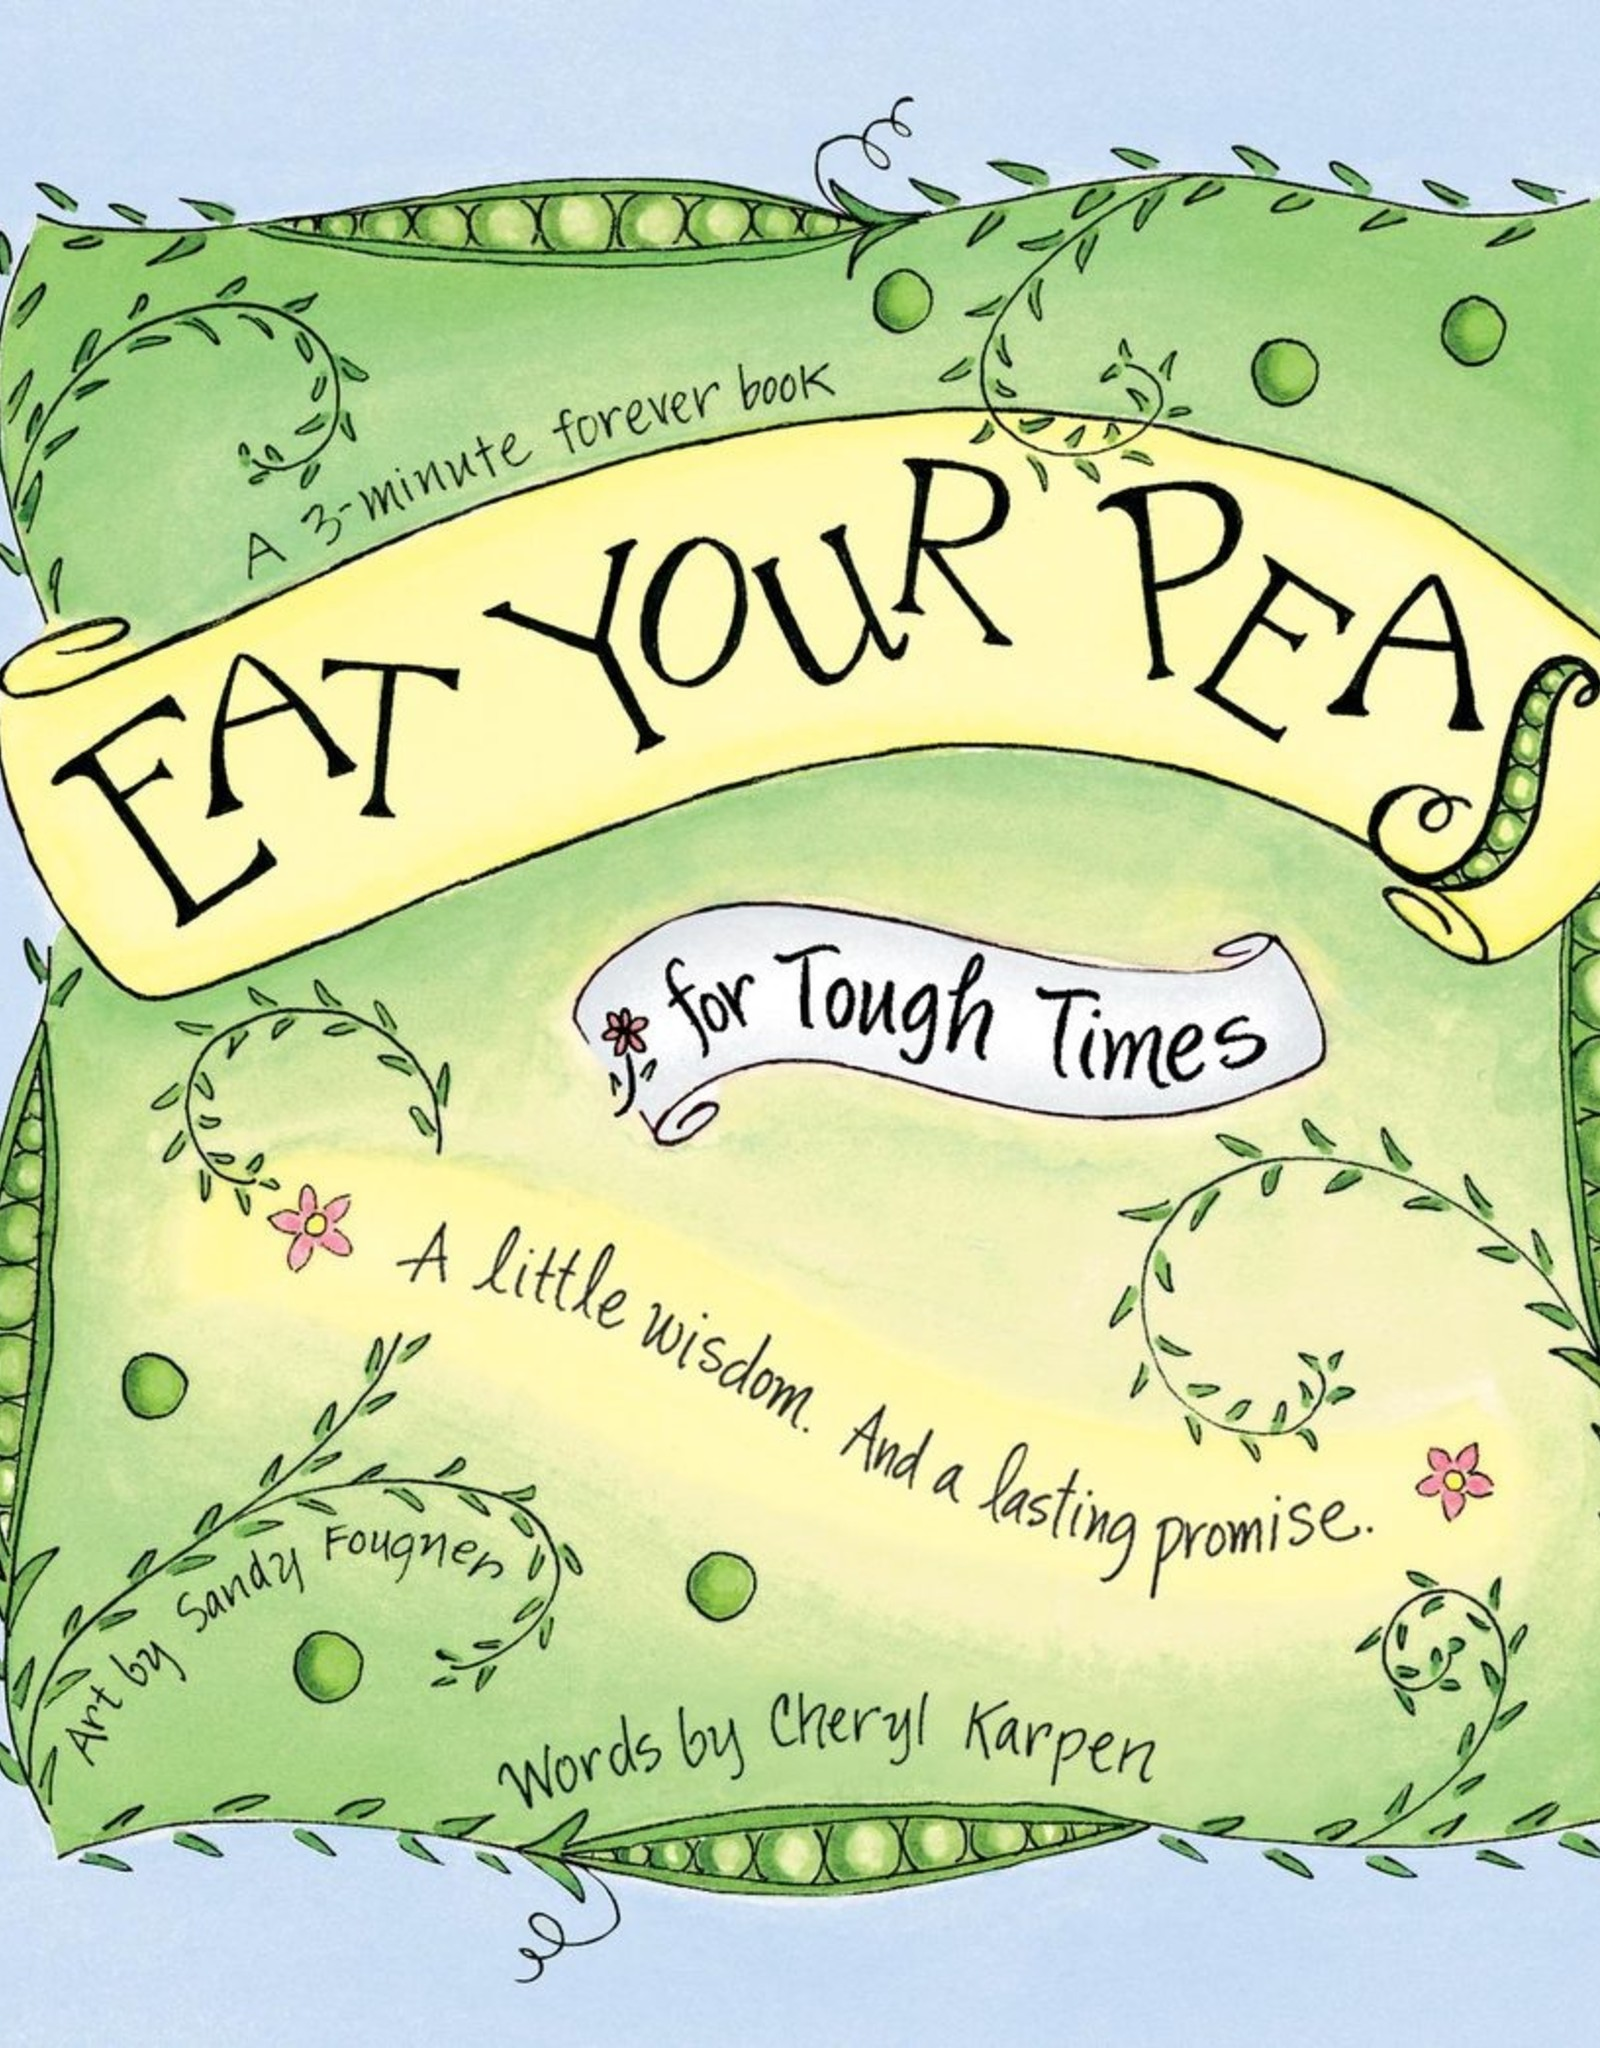 Gently Spoken Eat Your Peas for Tough Times